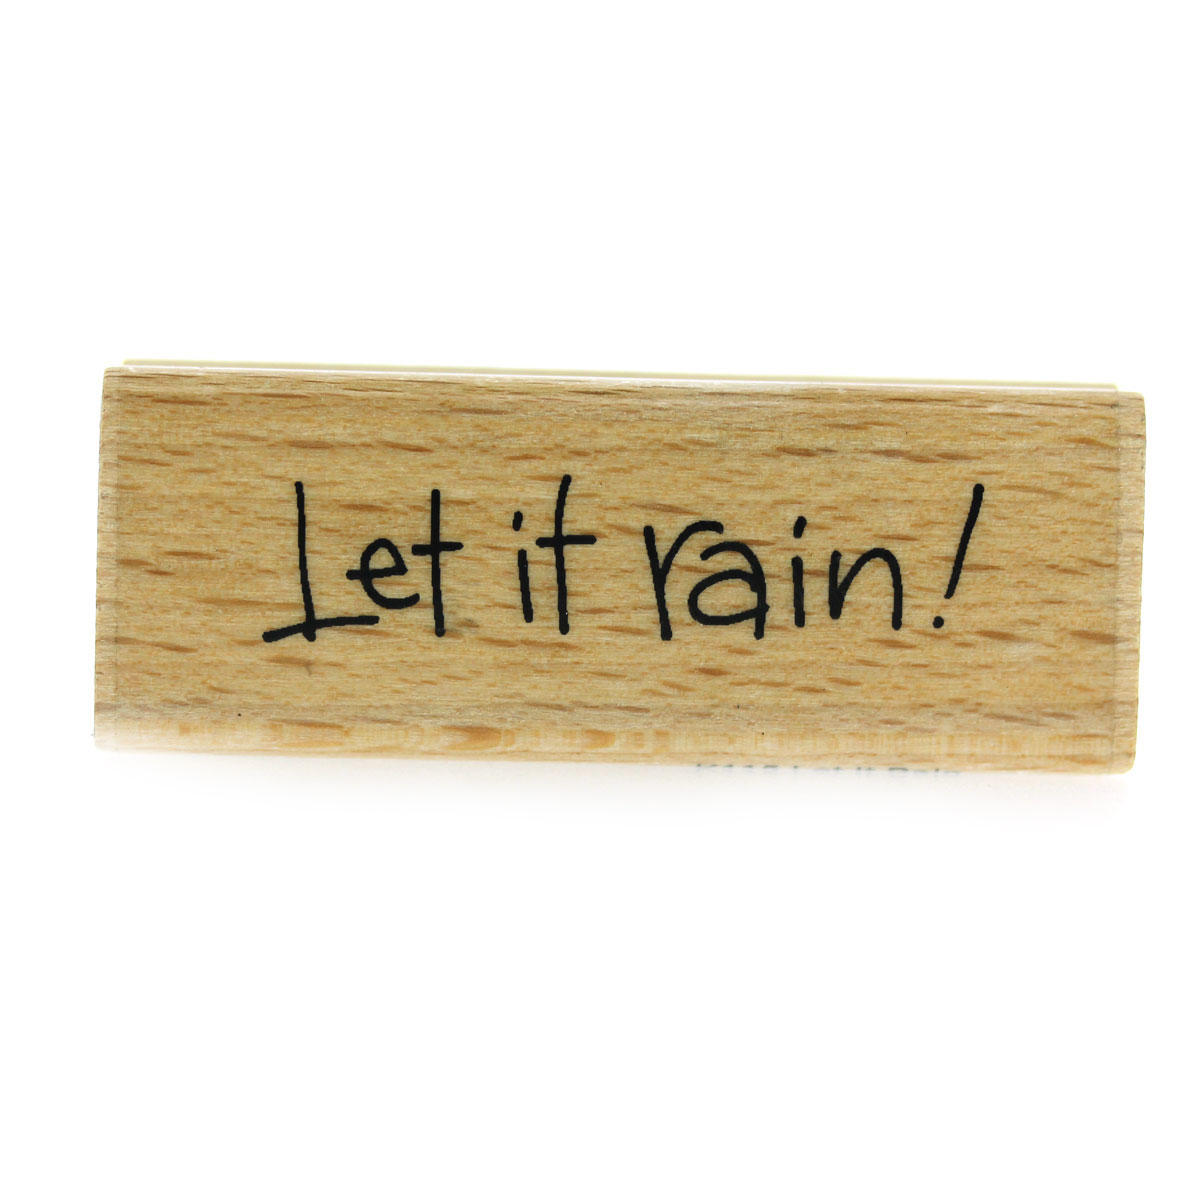 Let It Rain! Rubber Stamp